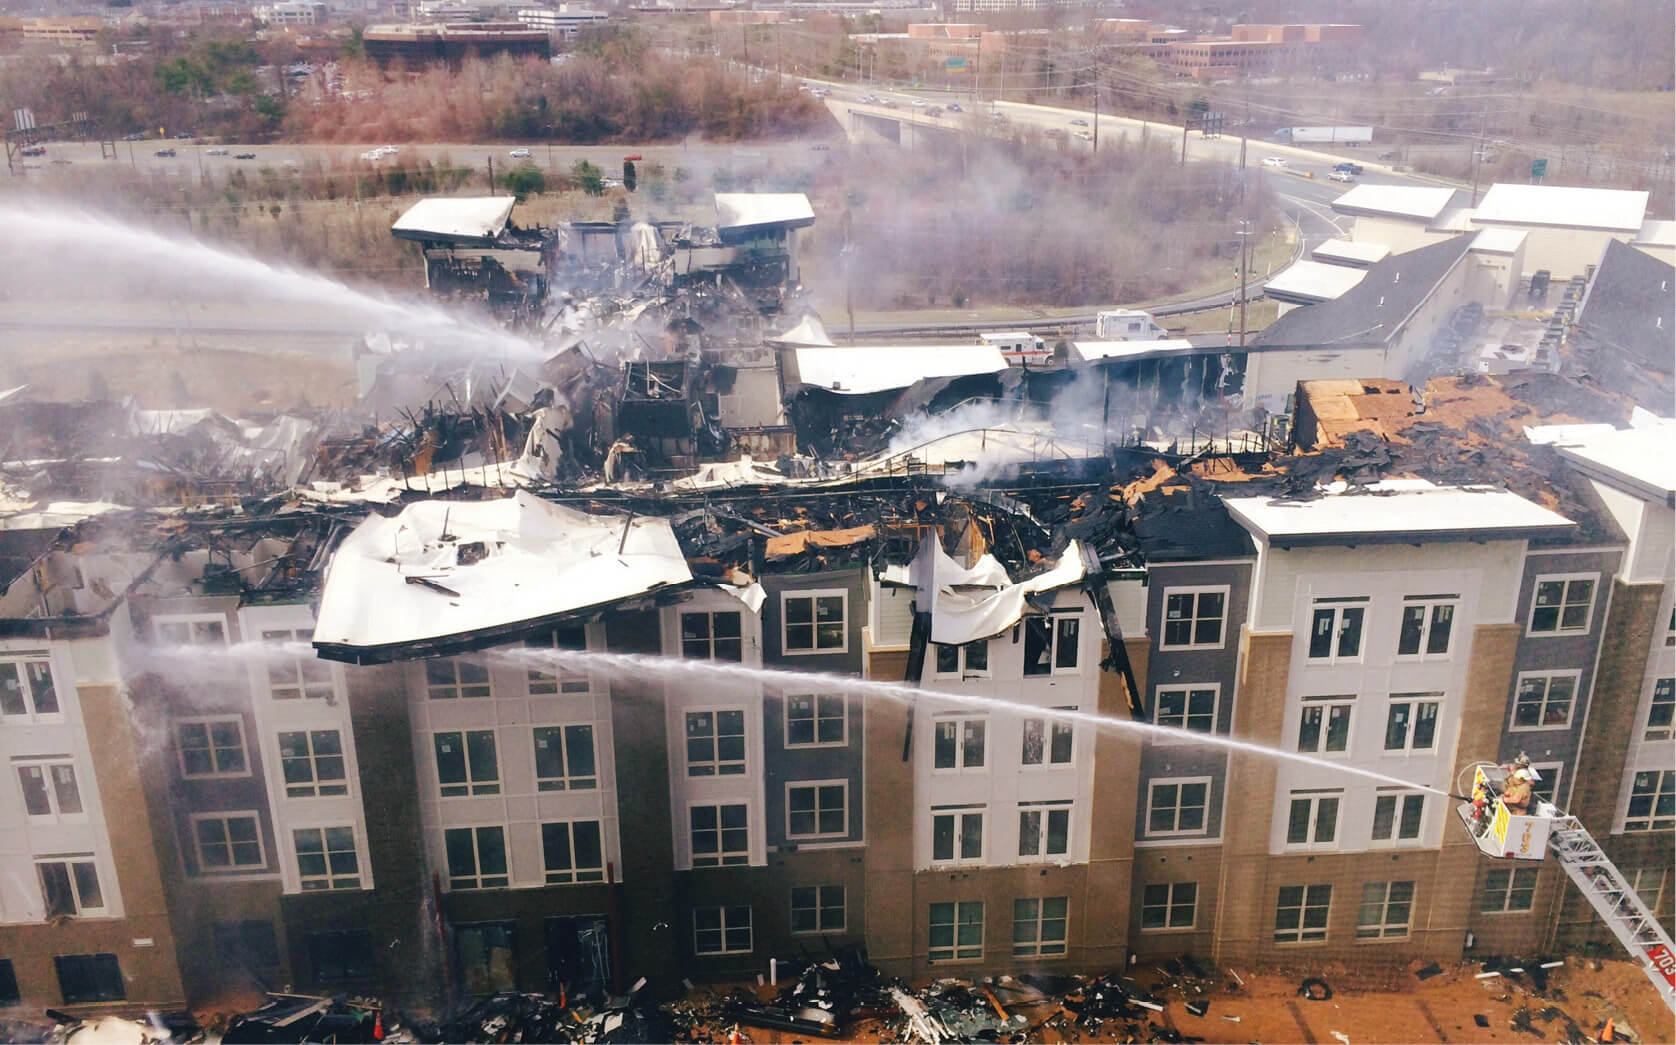 Multiple firefighters battle an active fire in the roof of a apartment complex.